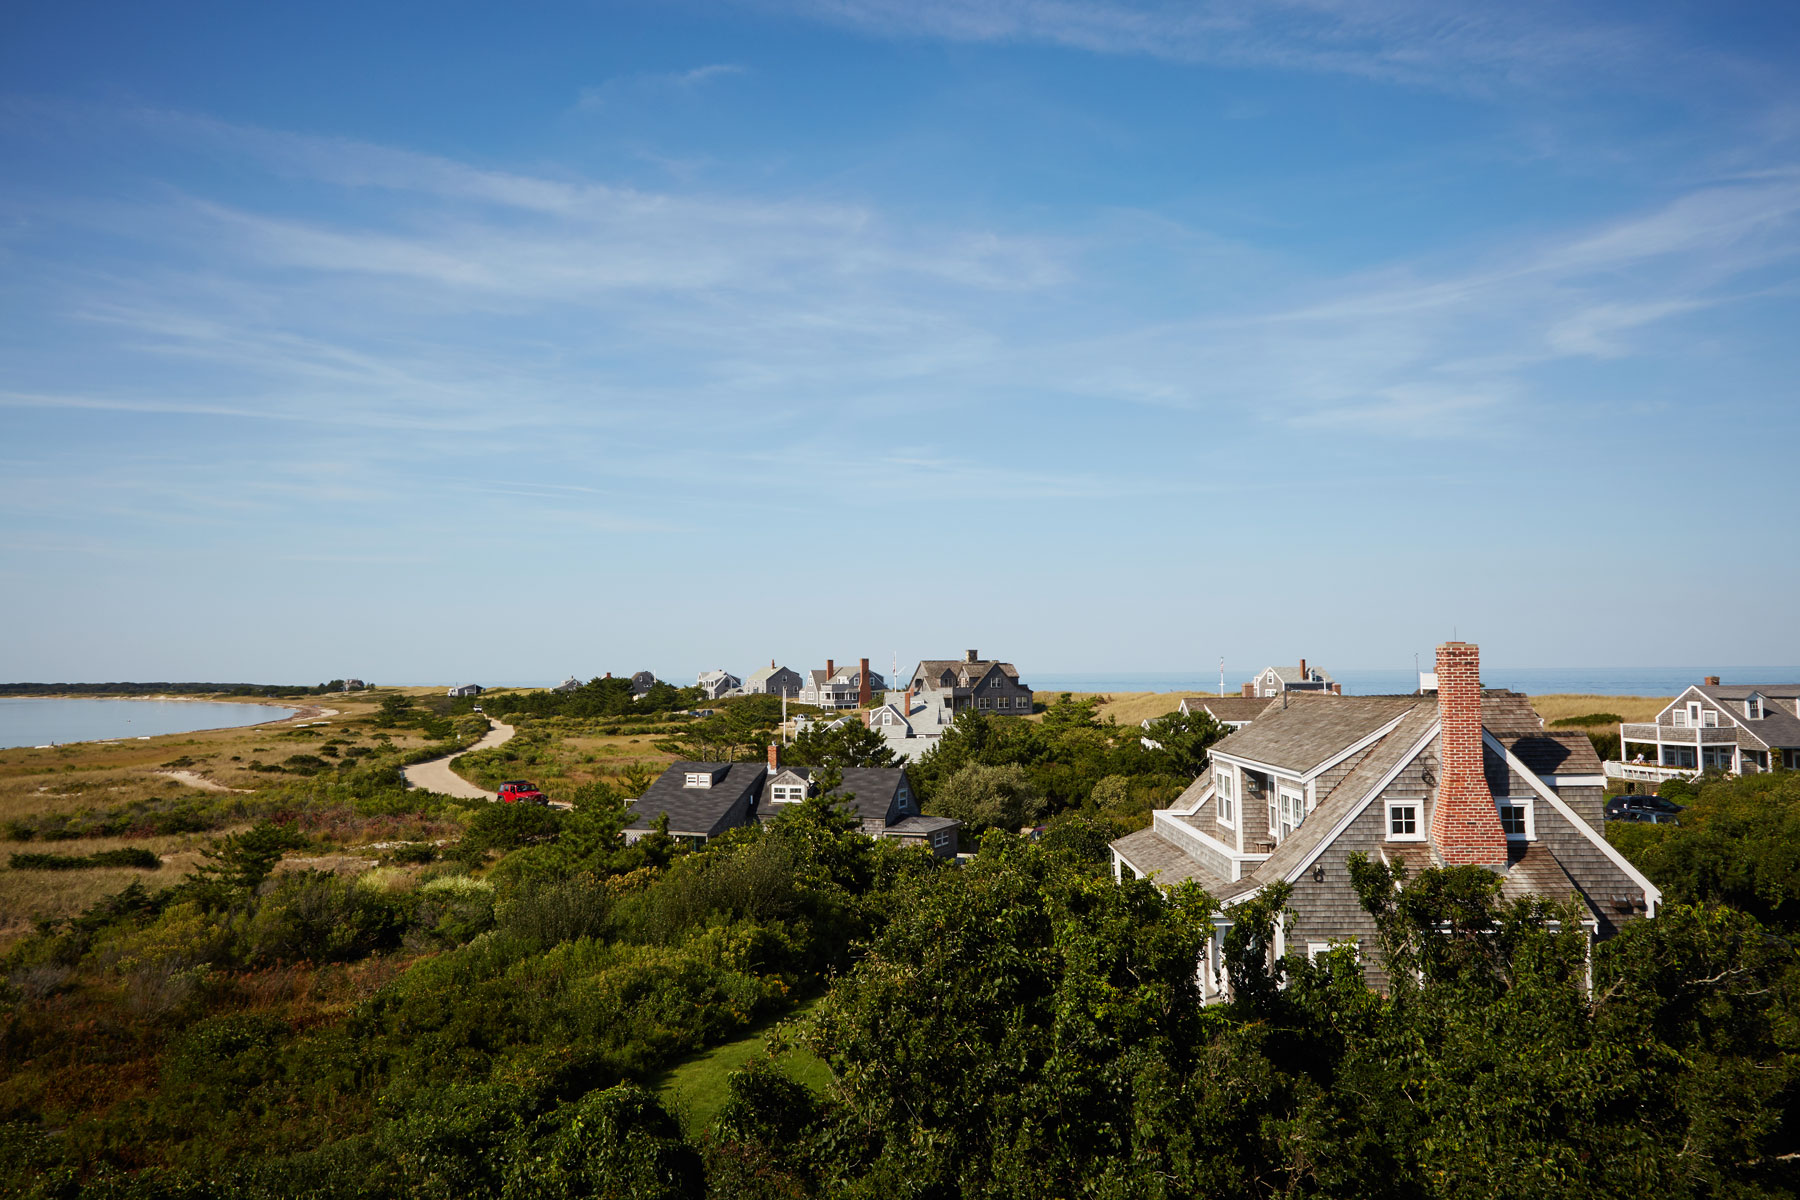 NANTUCKET_WAUWINET_0411.jpg